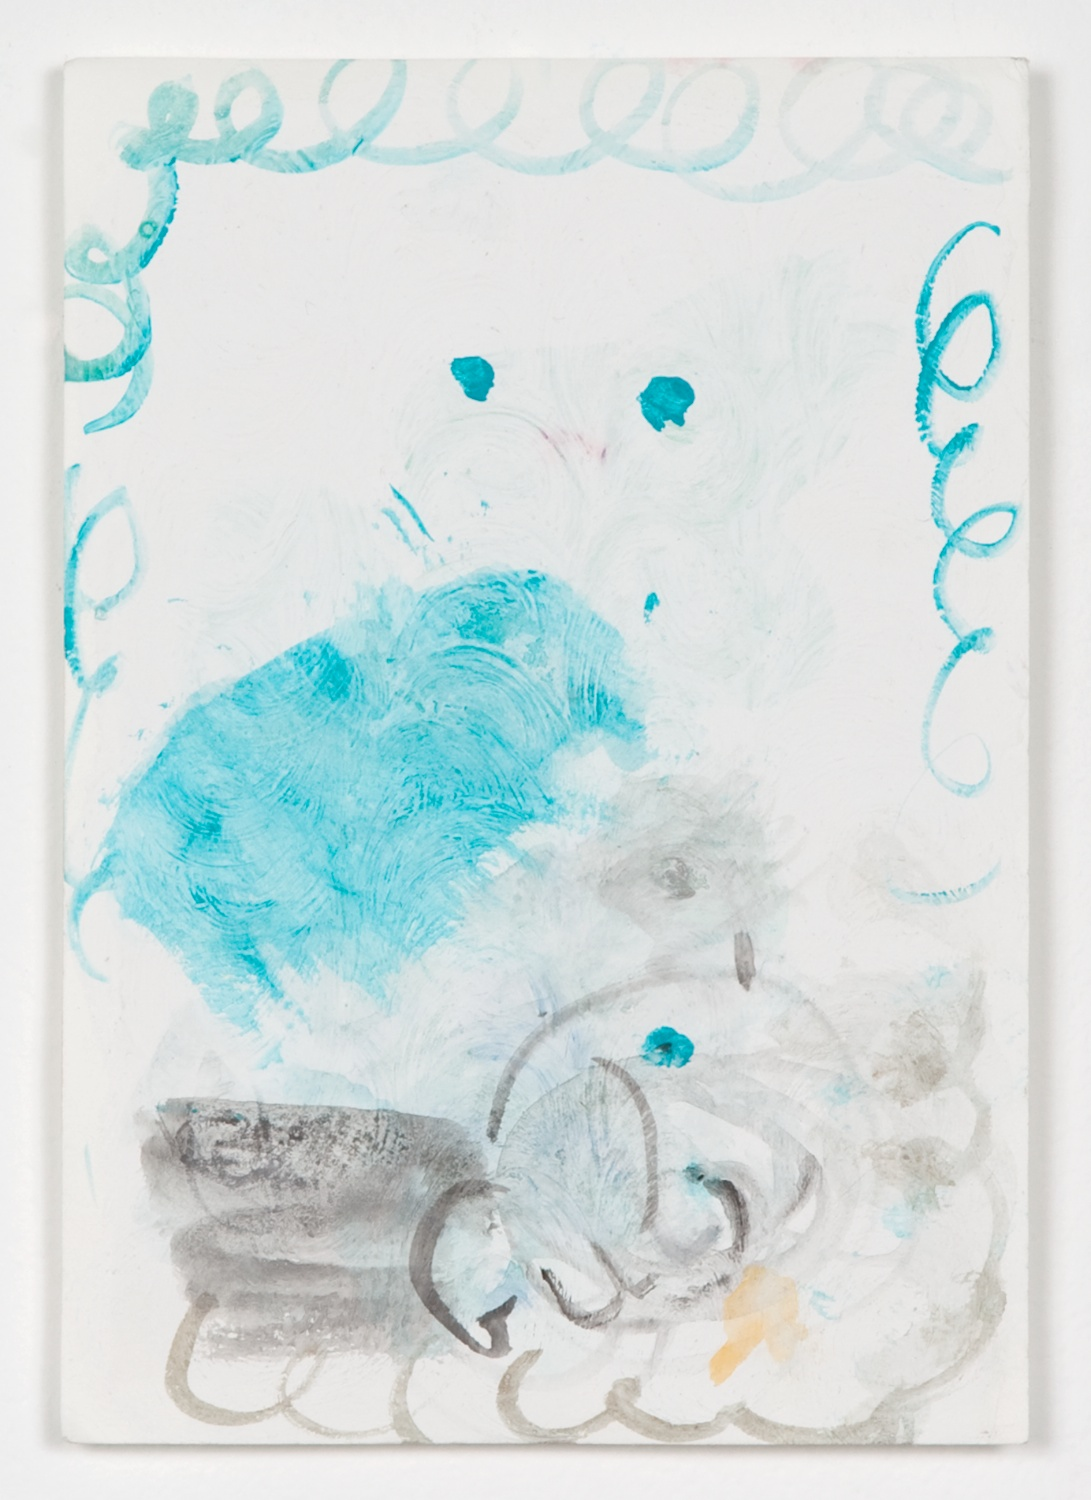 Helena Huneke  To Ellen  2012 Gouache, watercolor, and acrylic on paper 8 ¼h x 5 ½w in HH002